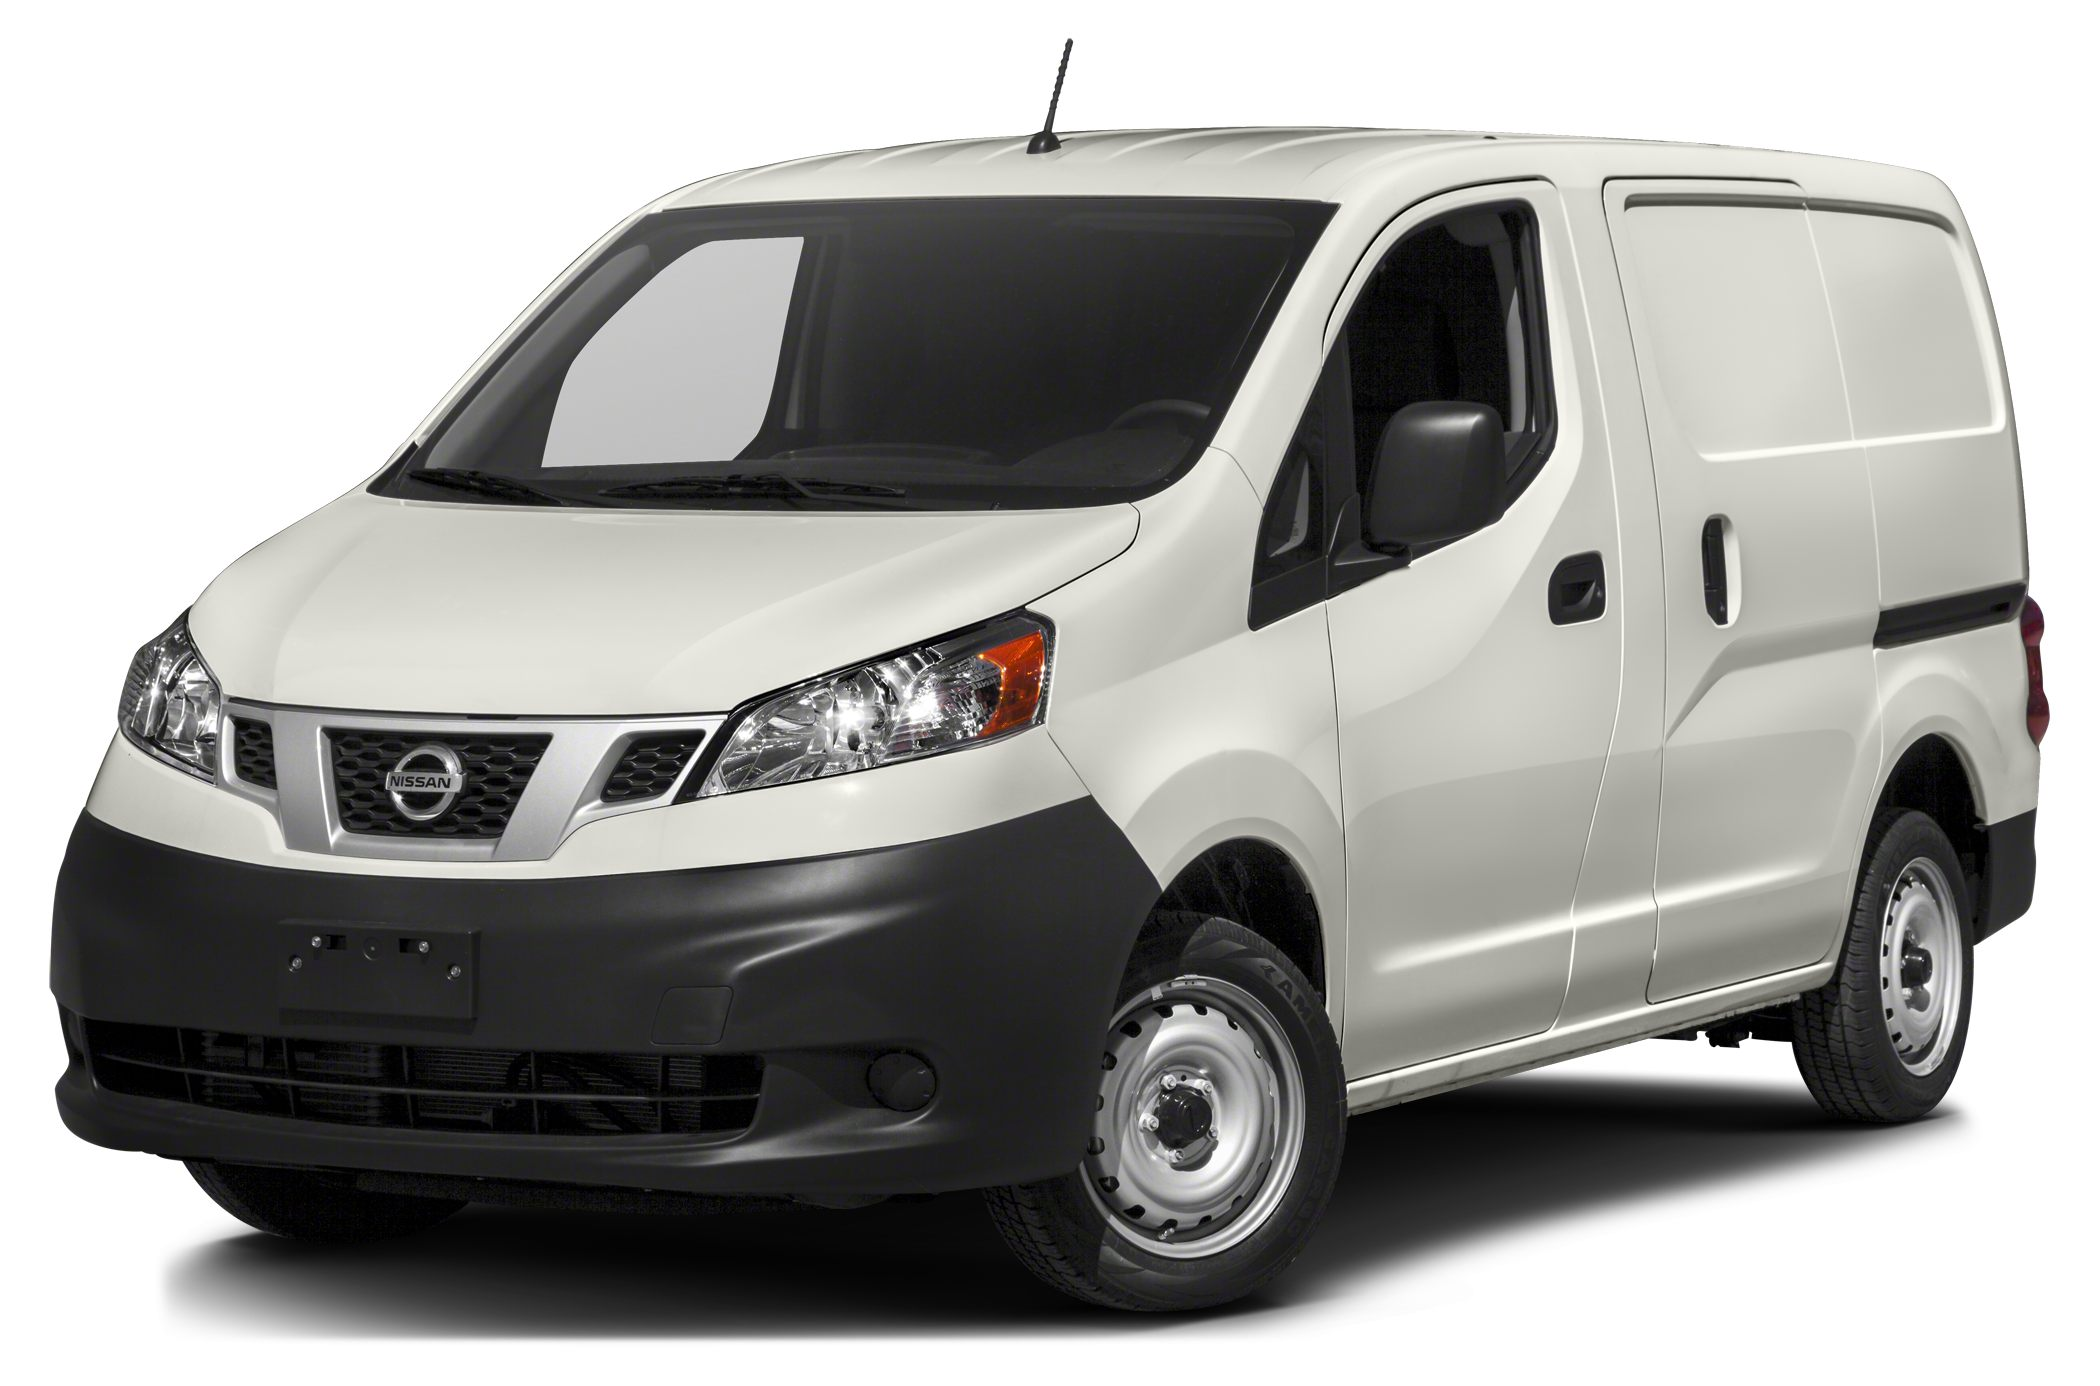 2016 nissan nv200 styles features highlights. Black Bedroom Furniture Sets. Home Design Ideas